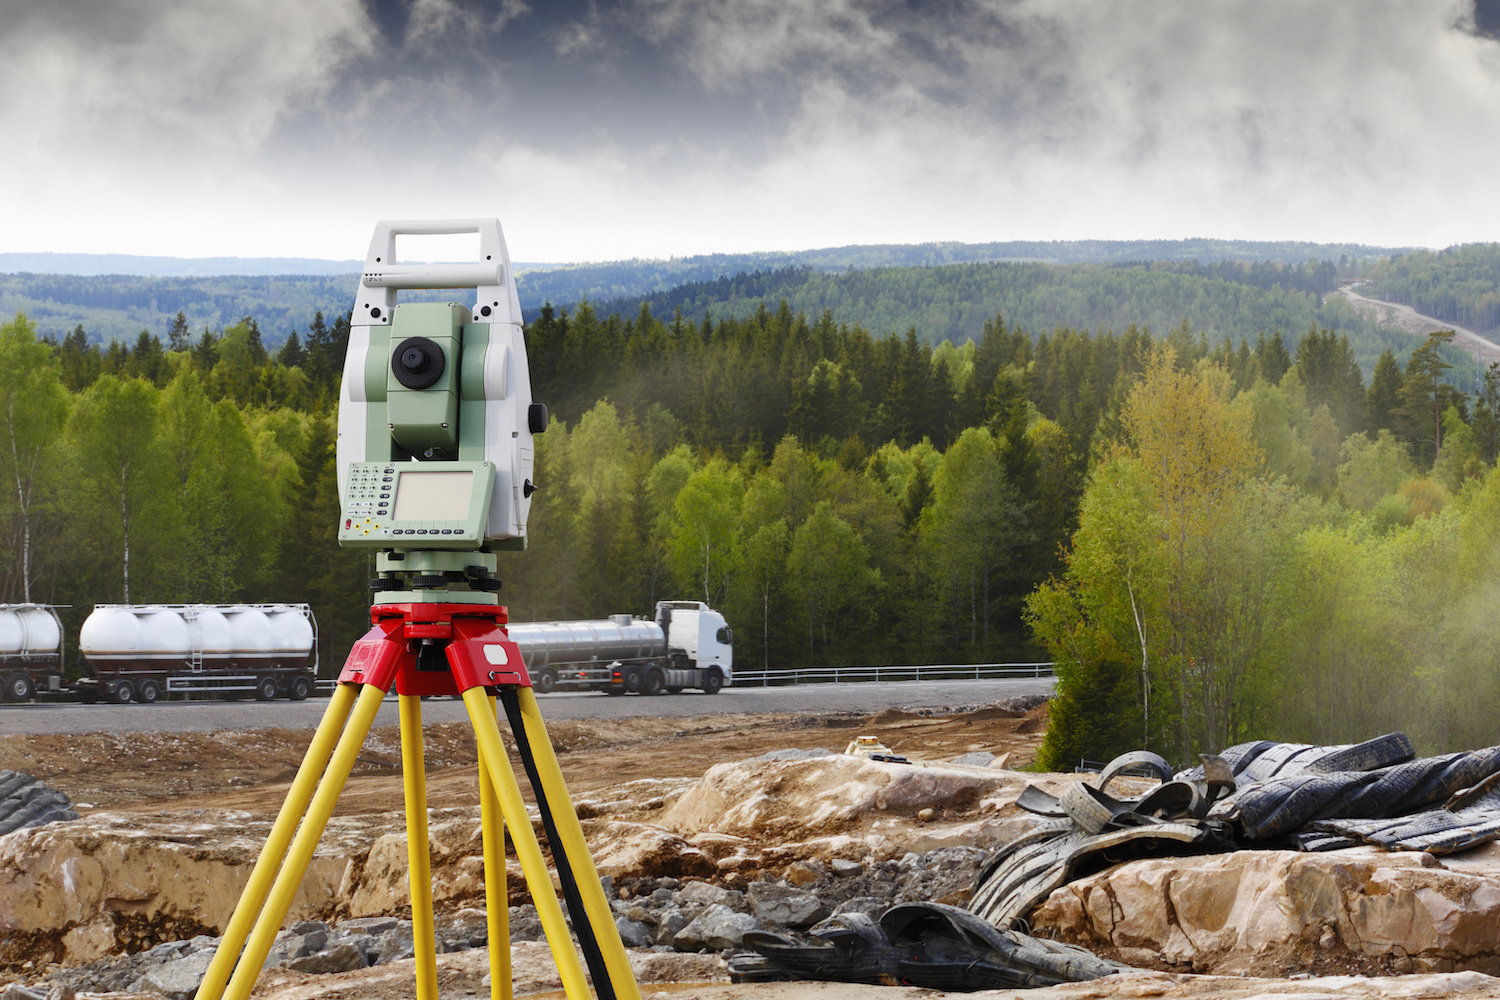 road-works, surveying and rock-blasting industry